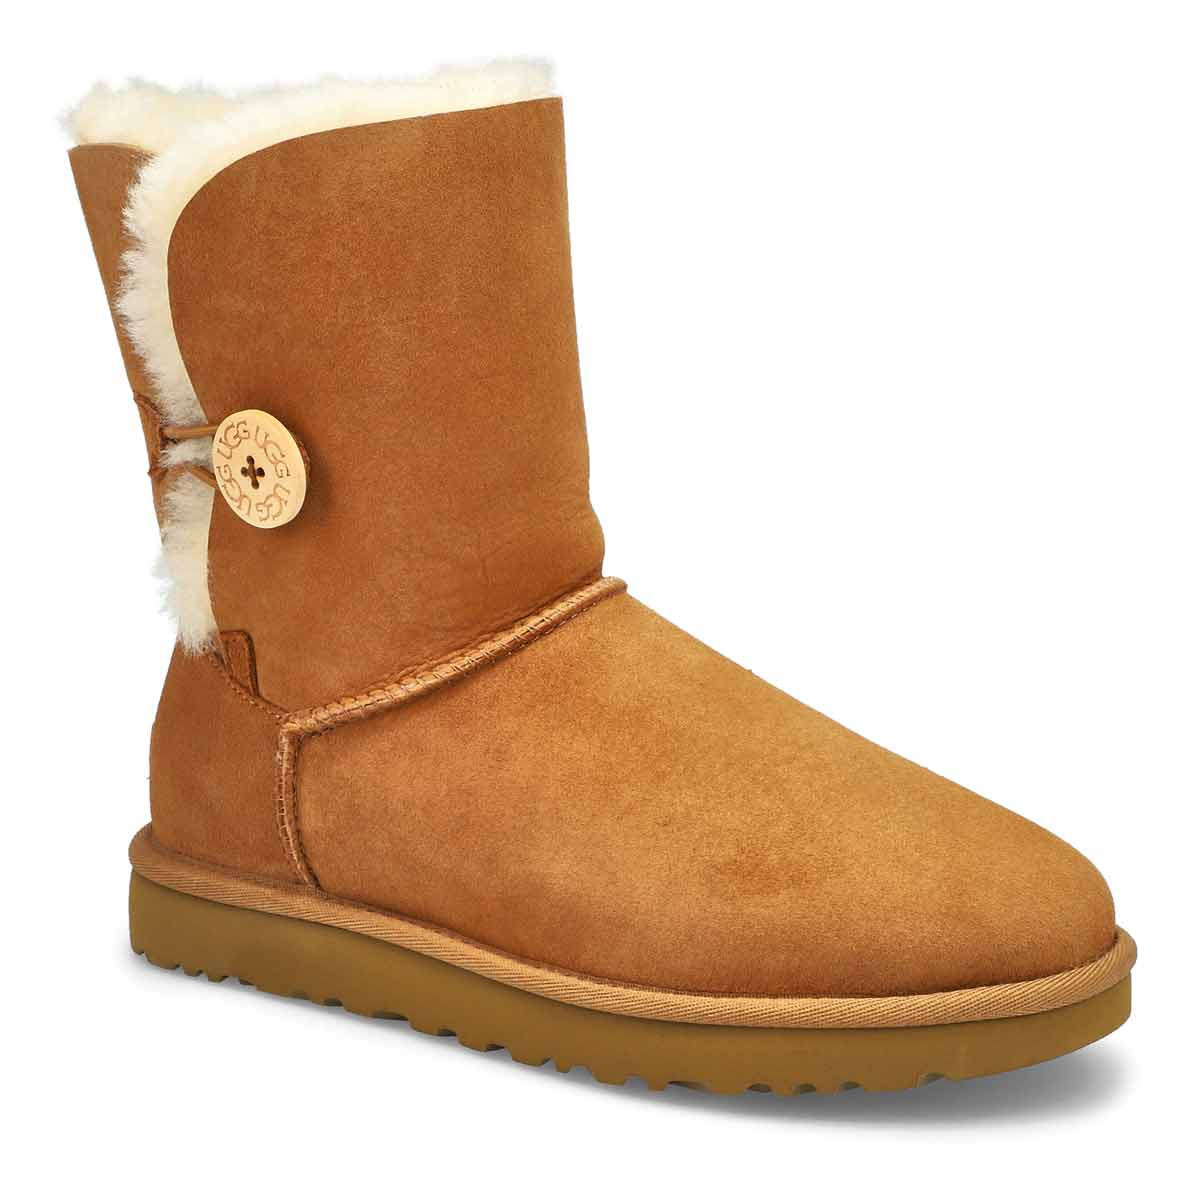 80ee8eab04a Women's BAILEY BUTTON II chestnut sheepskin boots